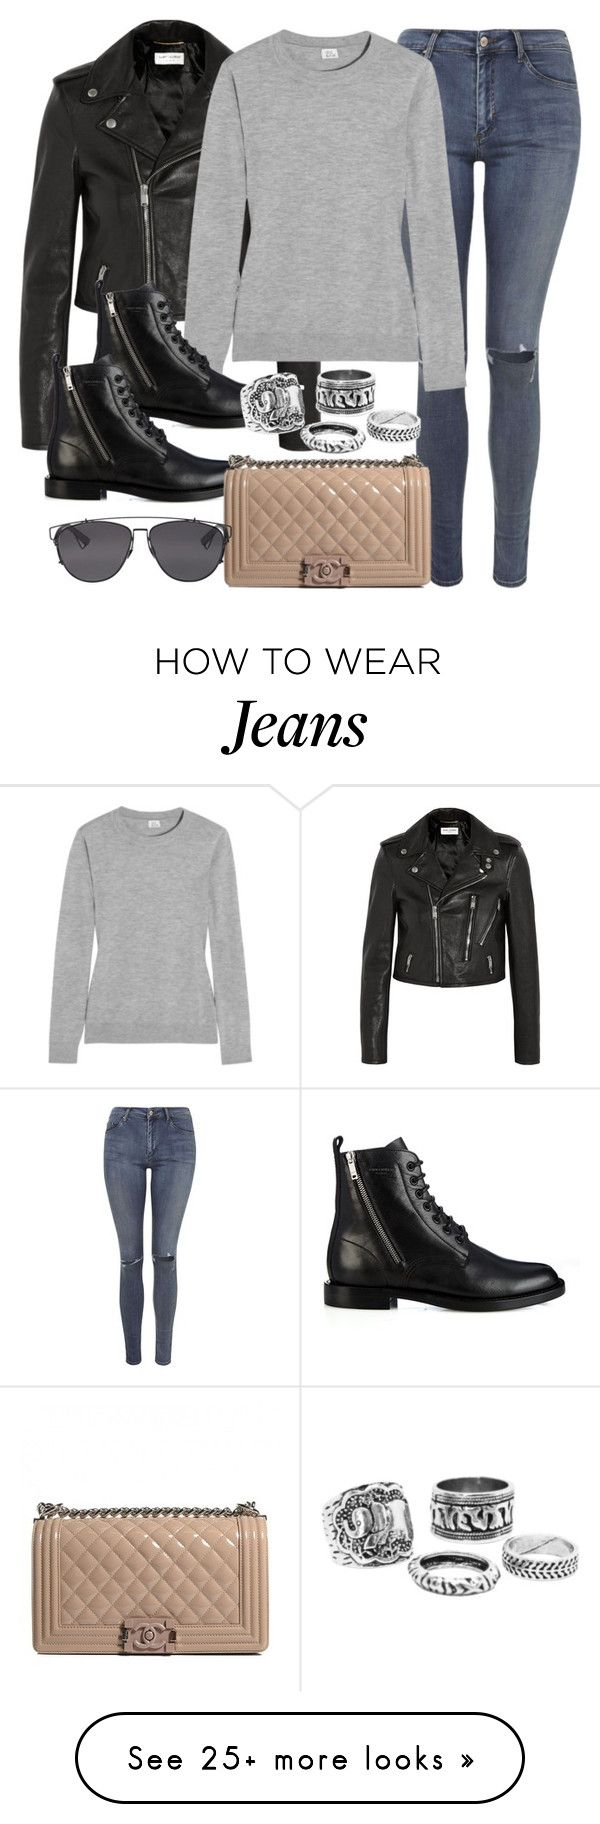 """Style #9454"" by vany-alvarado on Polyvore featuring Yves Saint Laurent, Topshop, Iris & Ink, Chanel and Christian Dior"